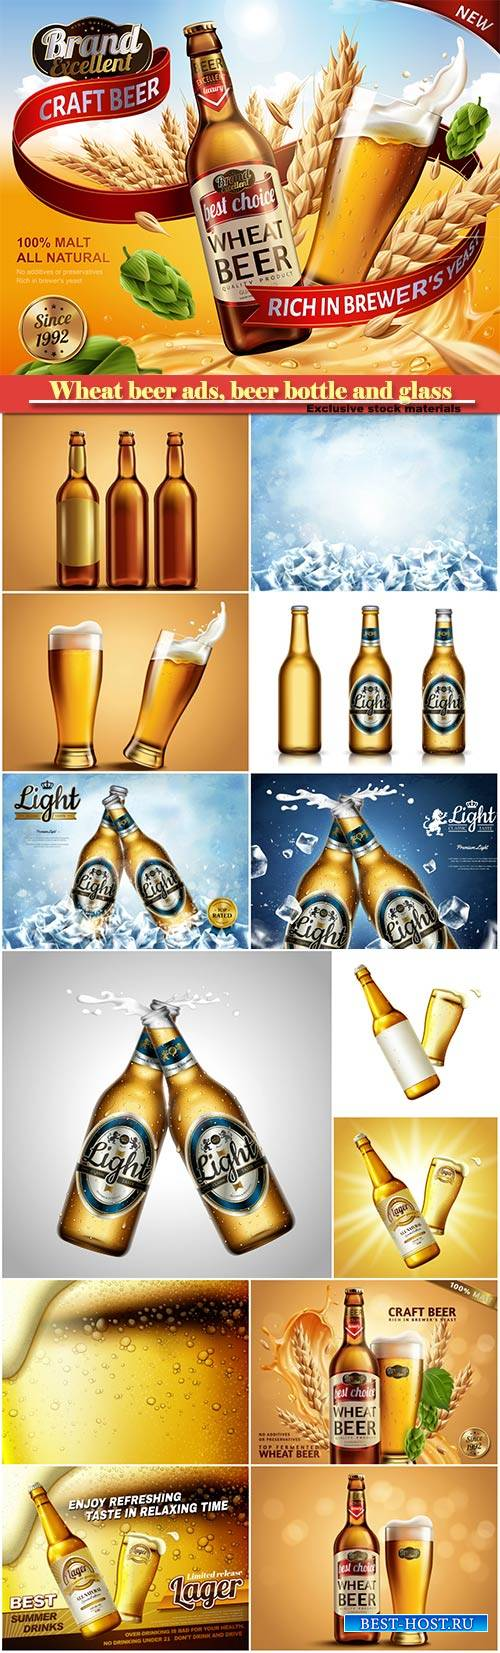 Wheat beer ads, beer bottle and glass with splashing beer and ingredients